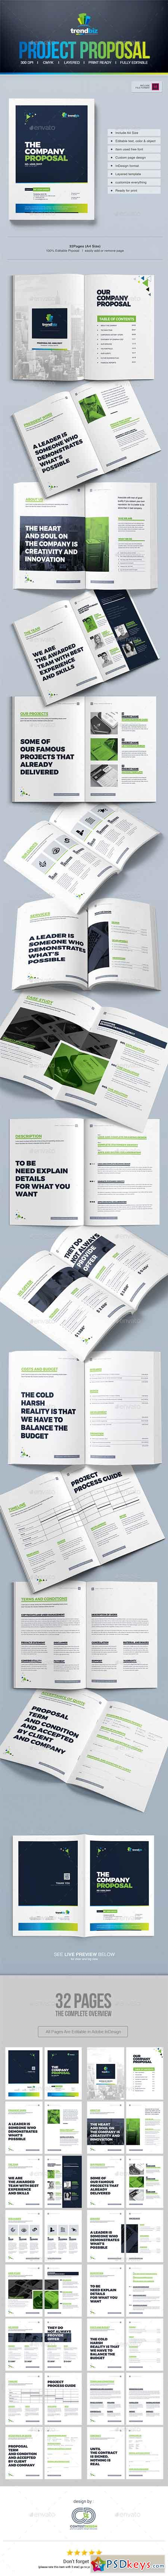 Proposal Template Design Project Proposal Quotation Template 19487580